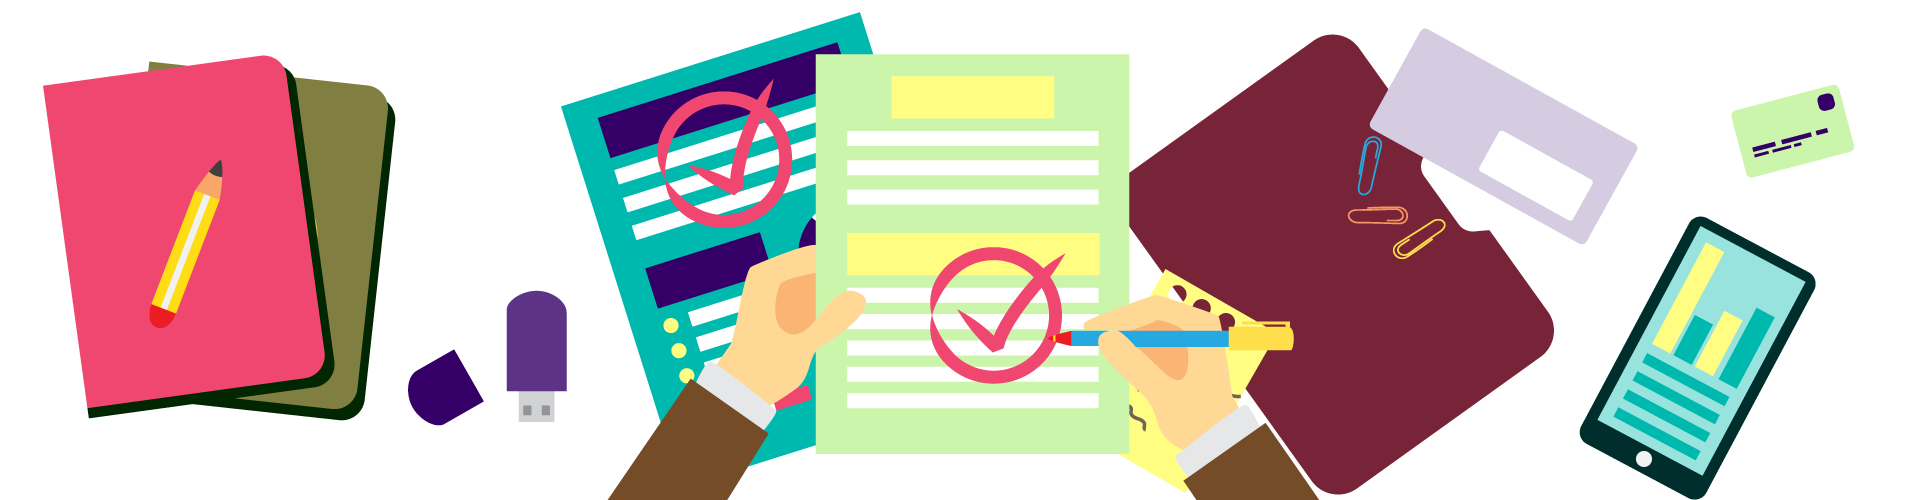 png library Contract clipart legal document